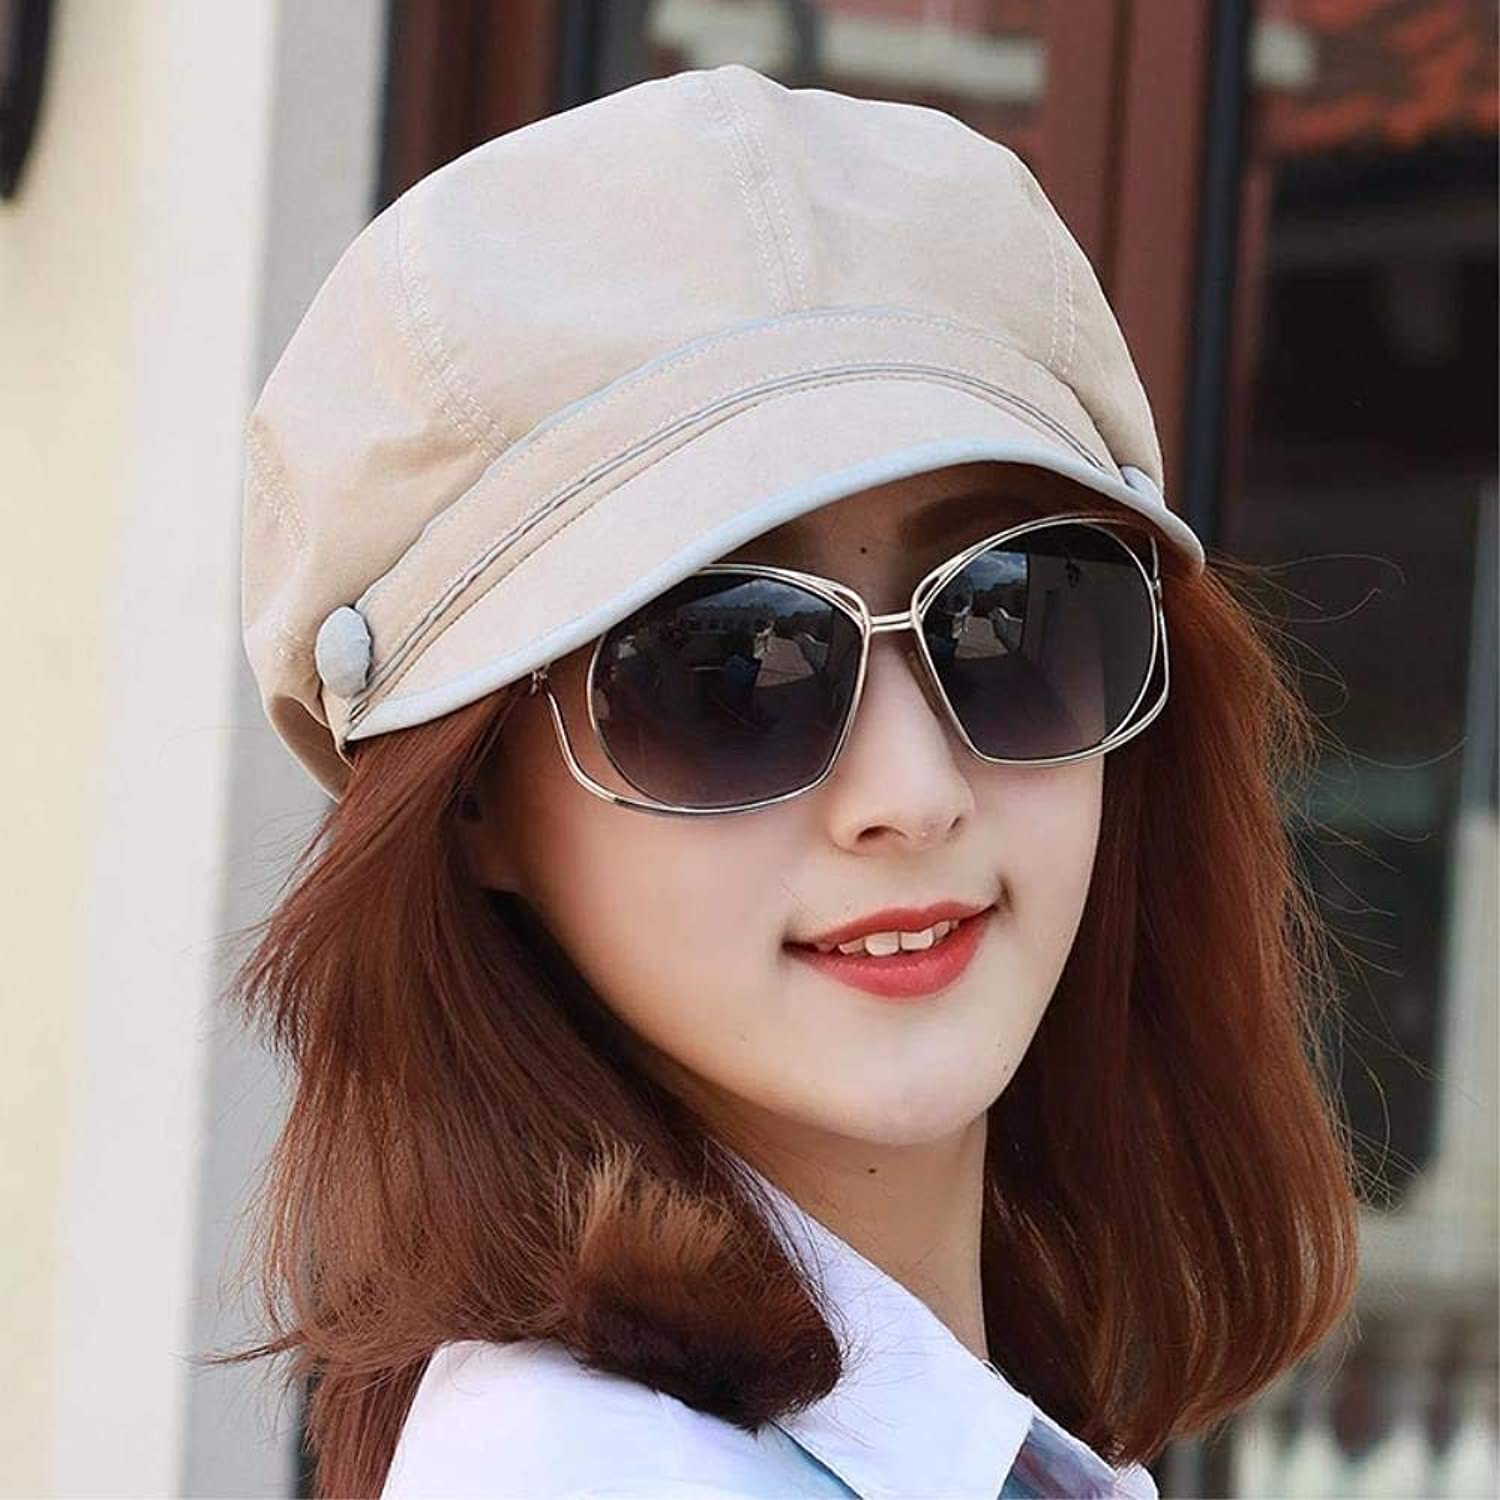 Chuiqingnet Hat the girl breathable package edge octagonal cap peaked cap hats Fashion Cap cool outdoor painters cap beret